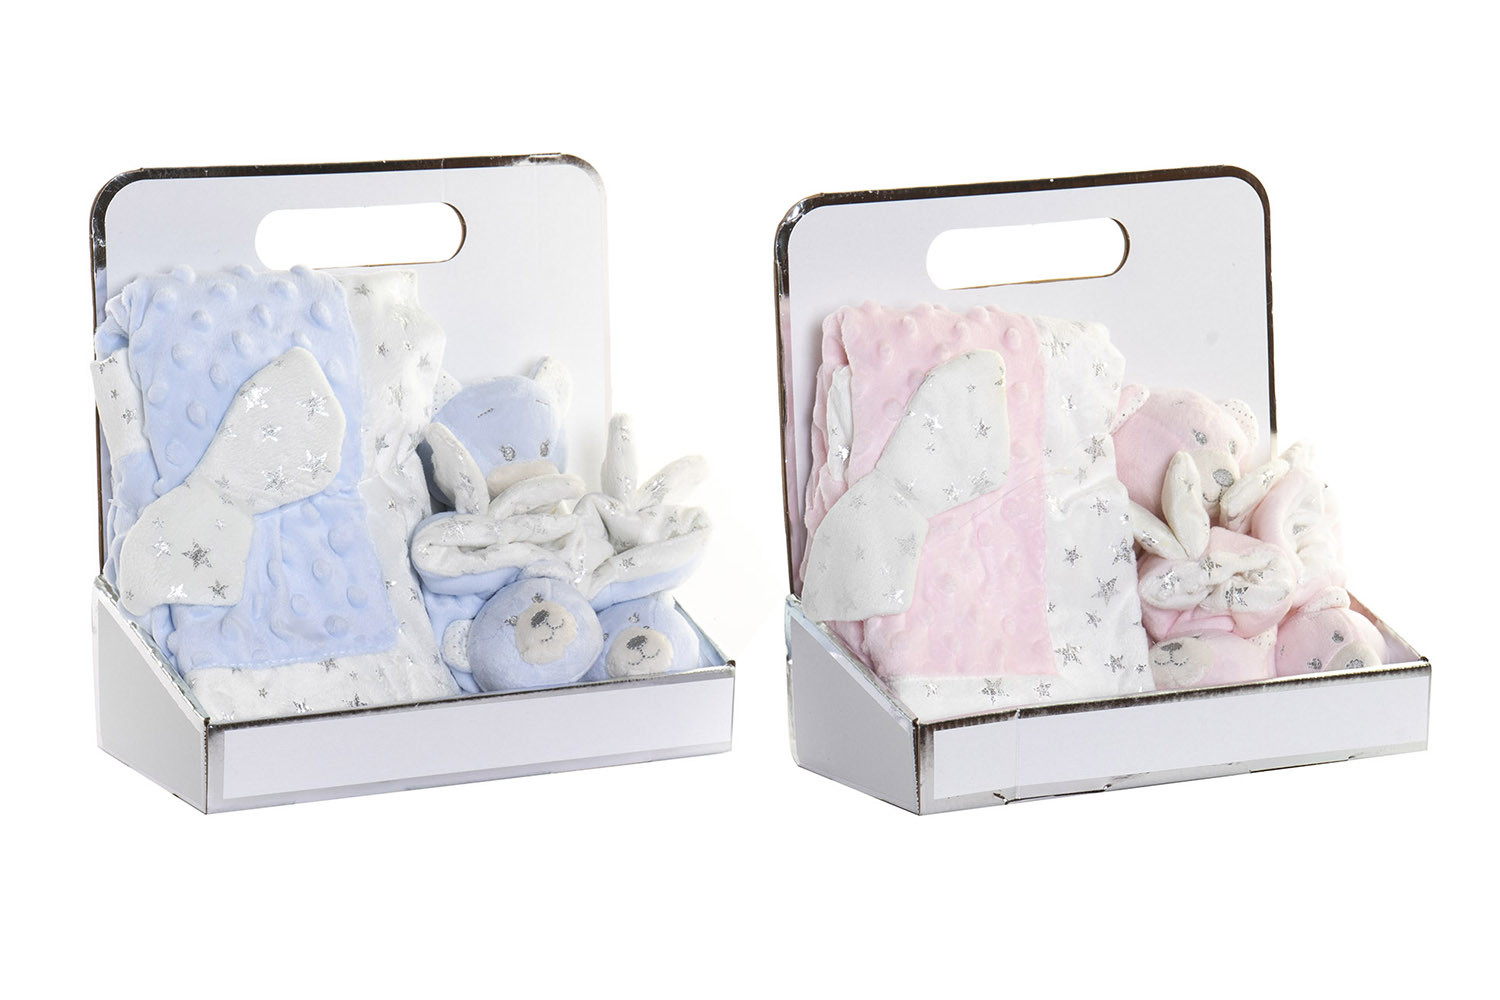 Teddy Bear with Blanket and Booties for Babies, Gift for a newborn. Blanket Baby Soft 26x13x26 cm - Home and More